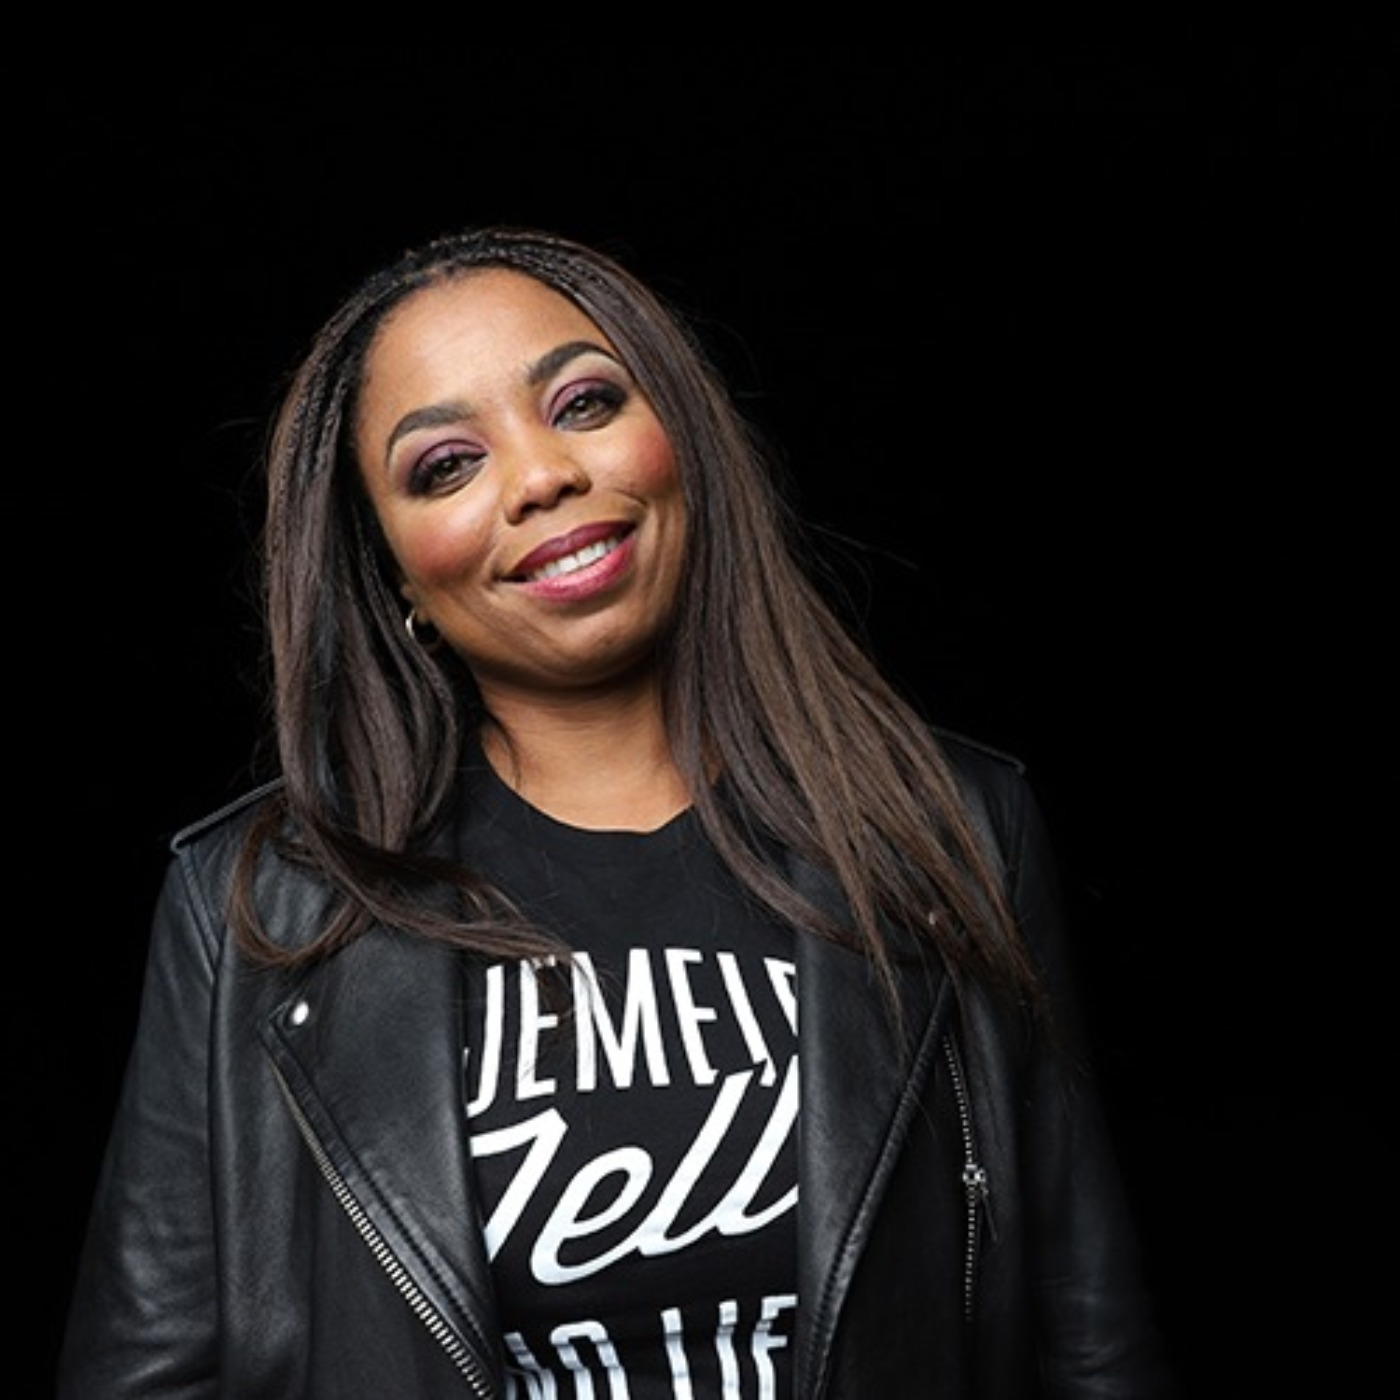 Journalist Jemele Hill on the intersection of sports and race